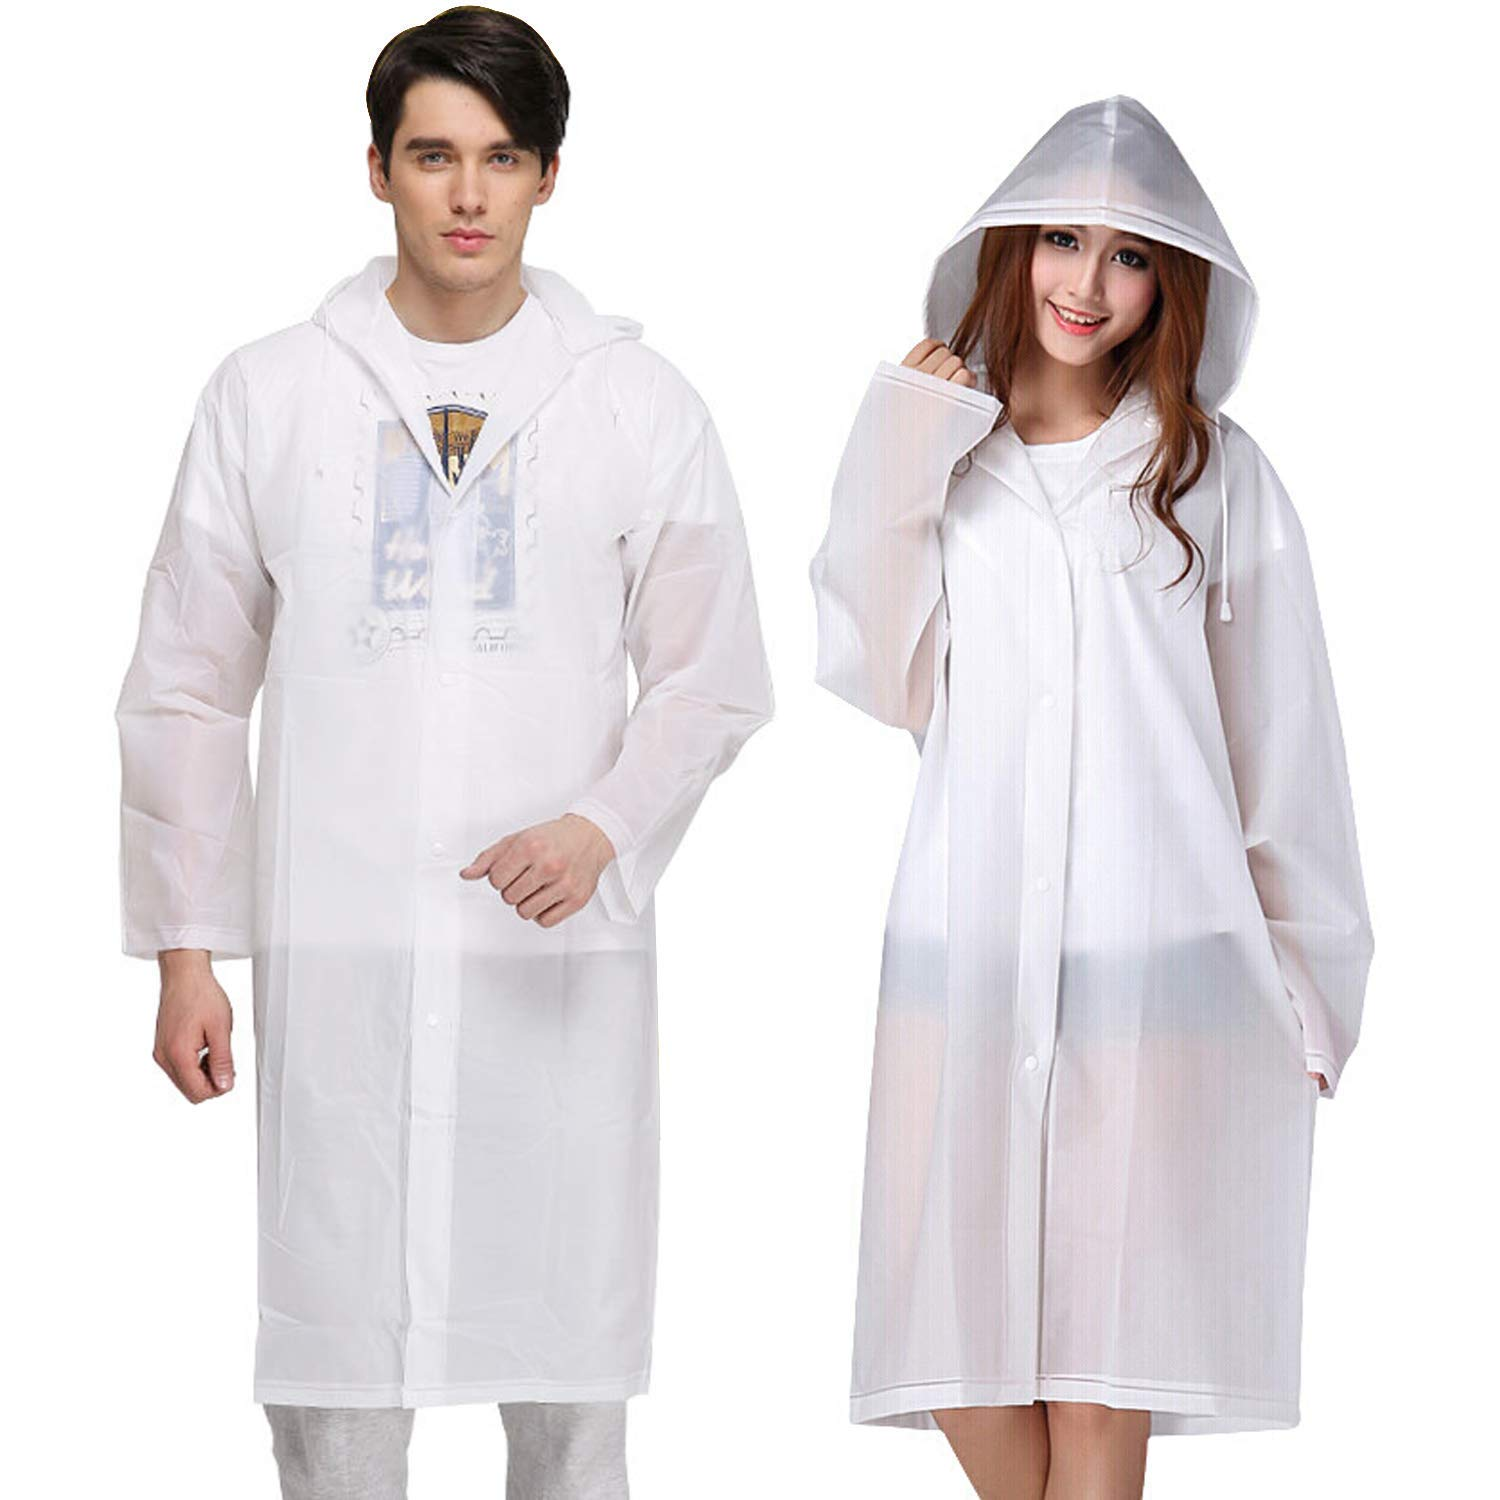 Exptolii Rain Poncho for Adults, 2 Pack Reusable Raincoat Emergency Rain Gear with Hoods and Sleeves 47.2'' x 27.2''